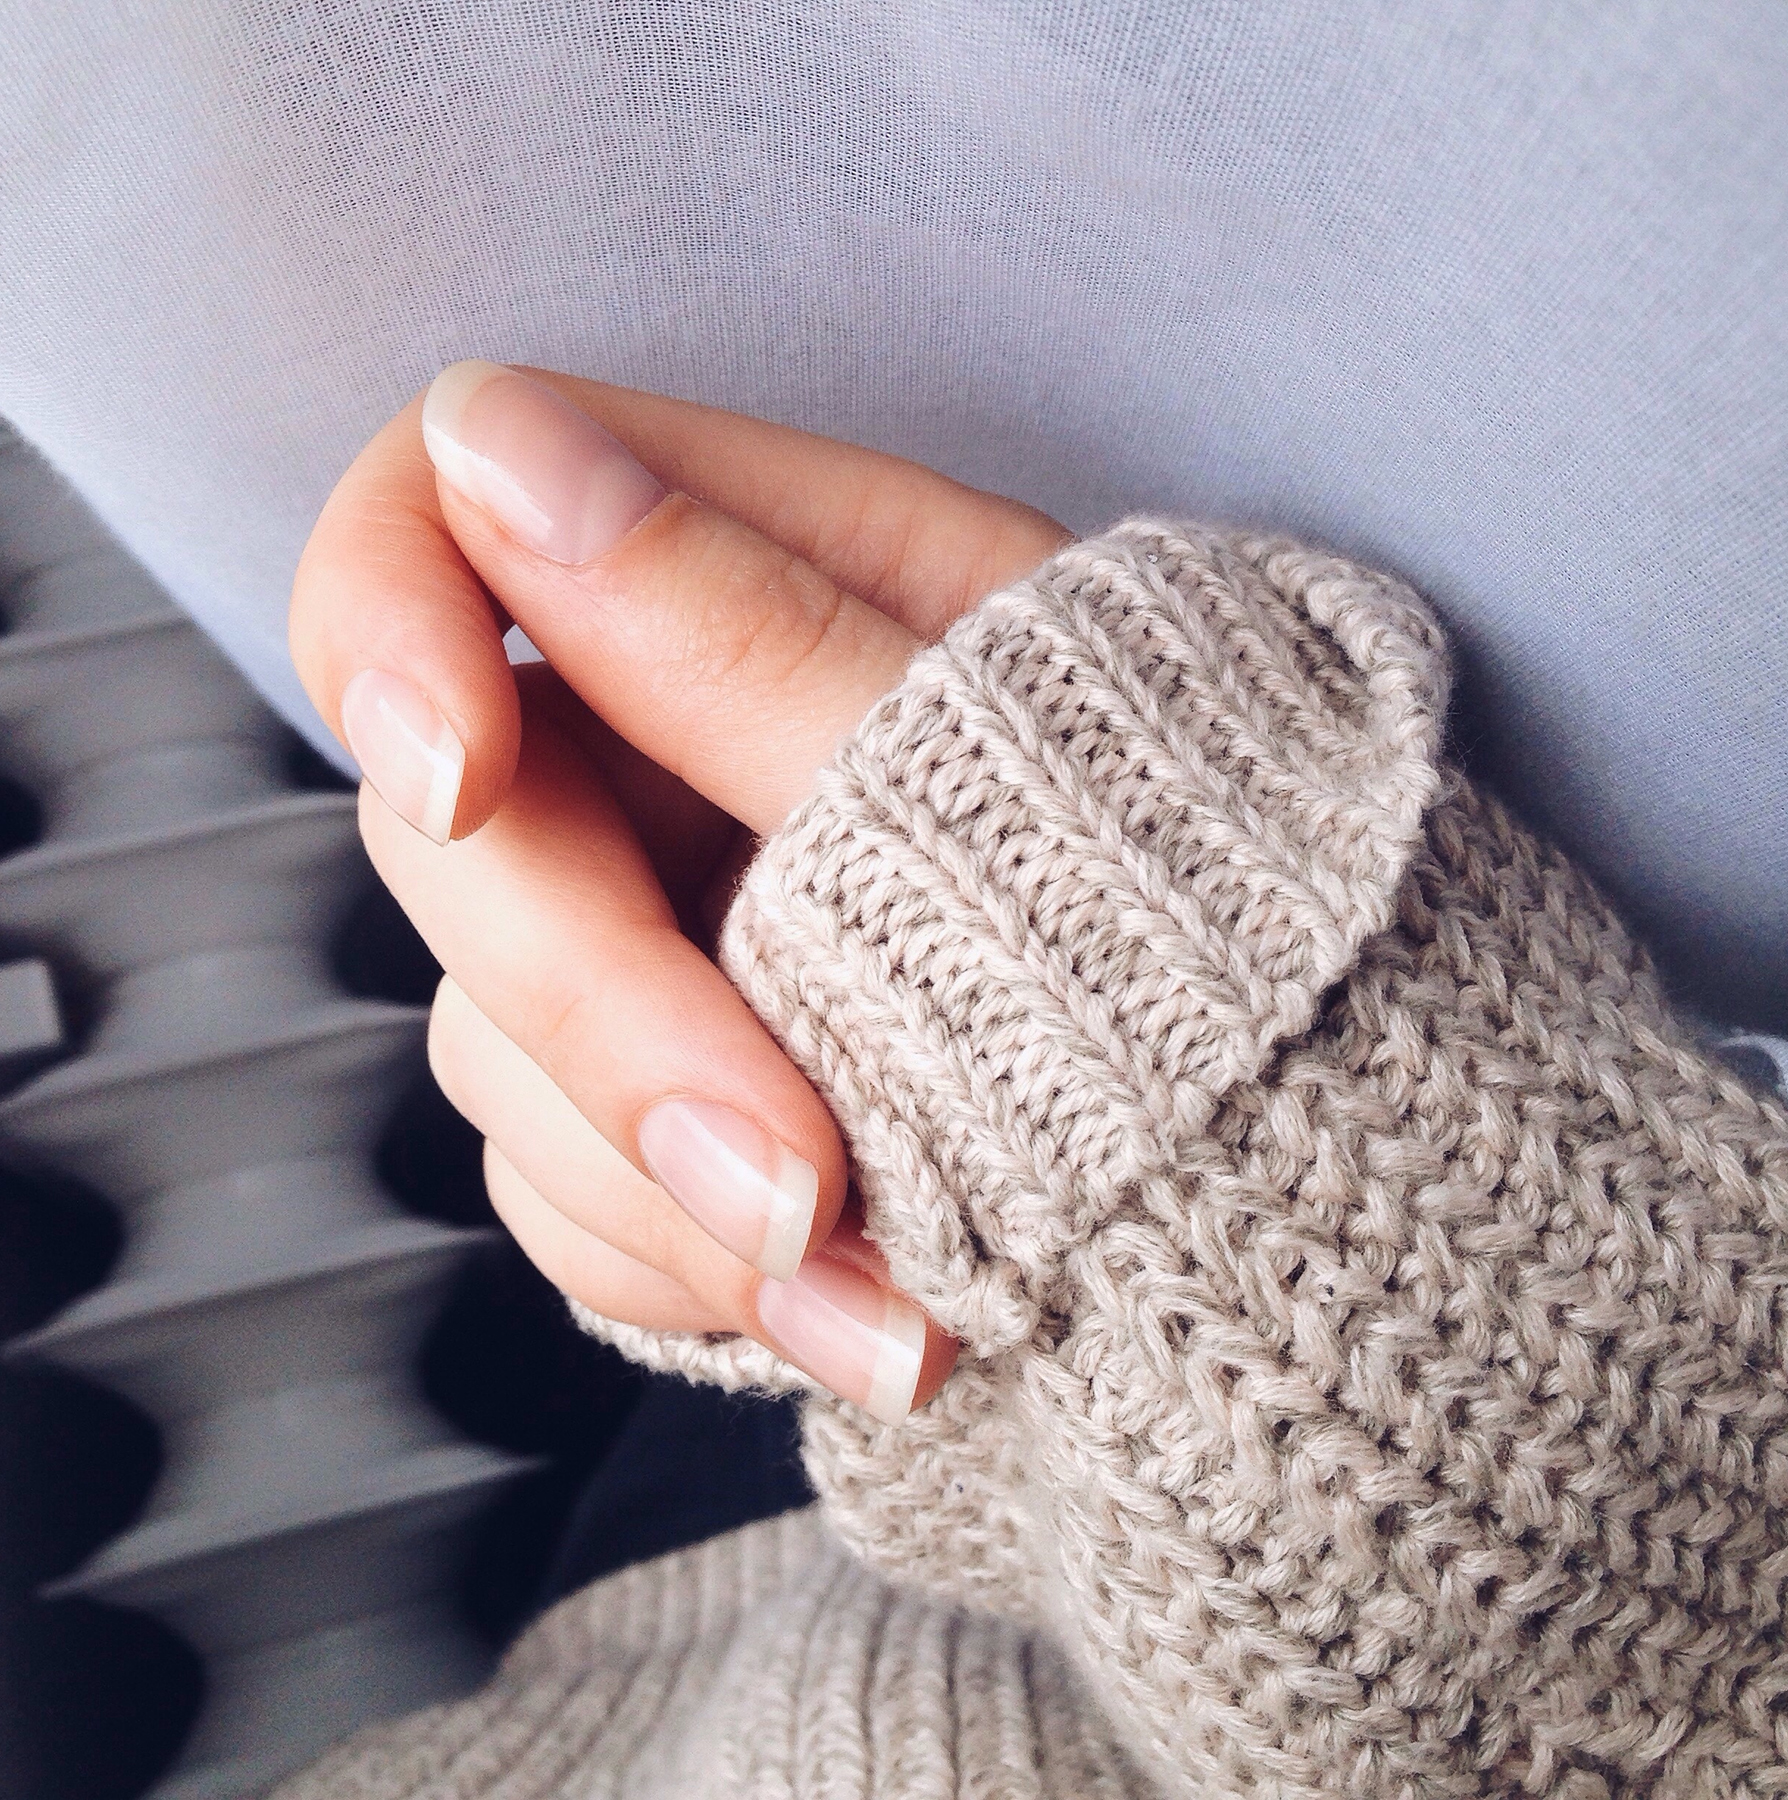 Manicured nails and sweater sleeve